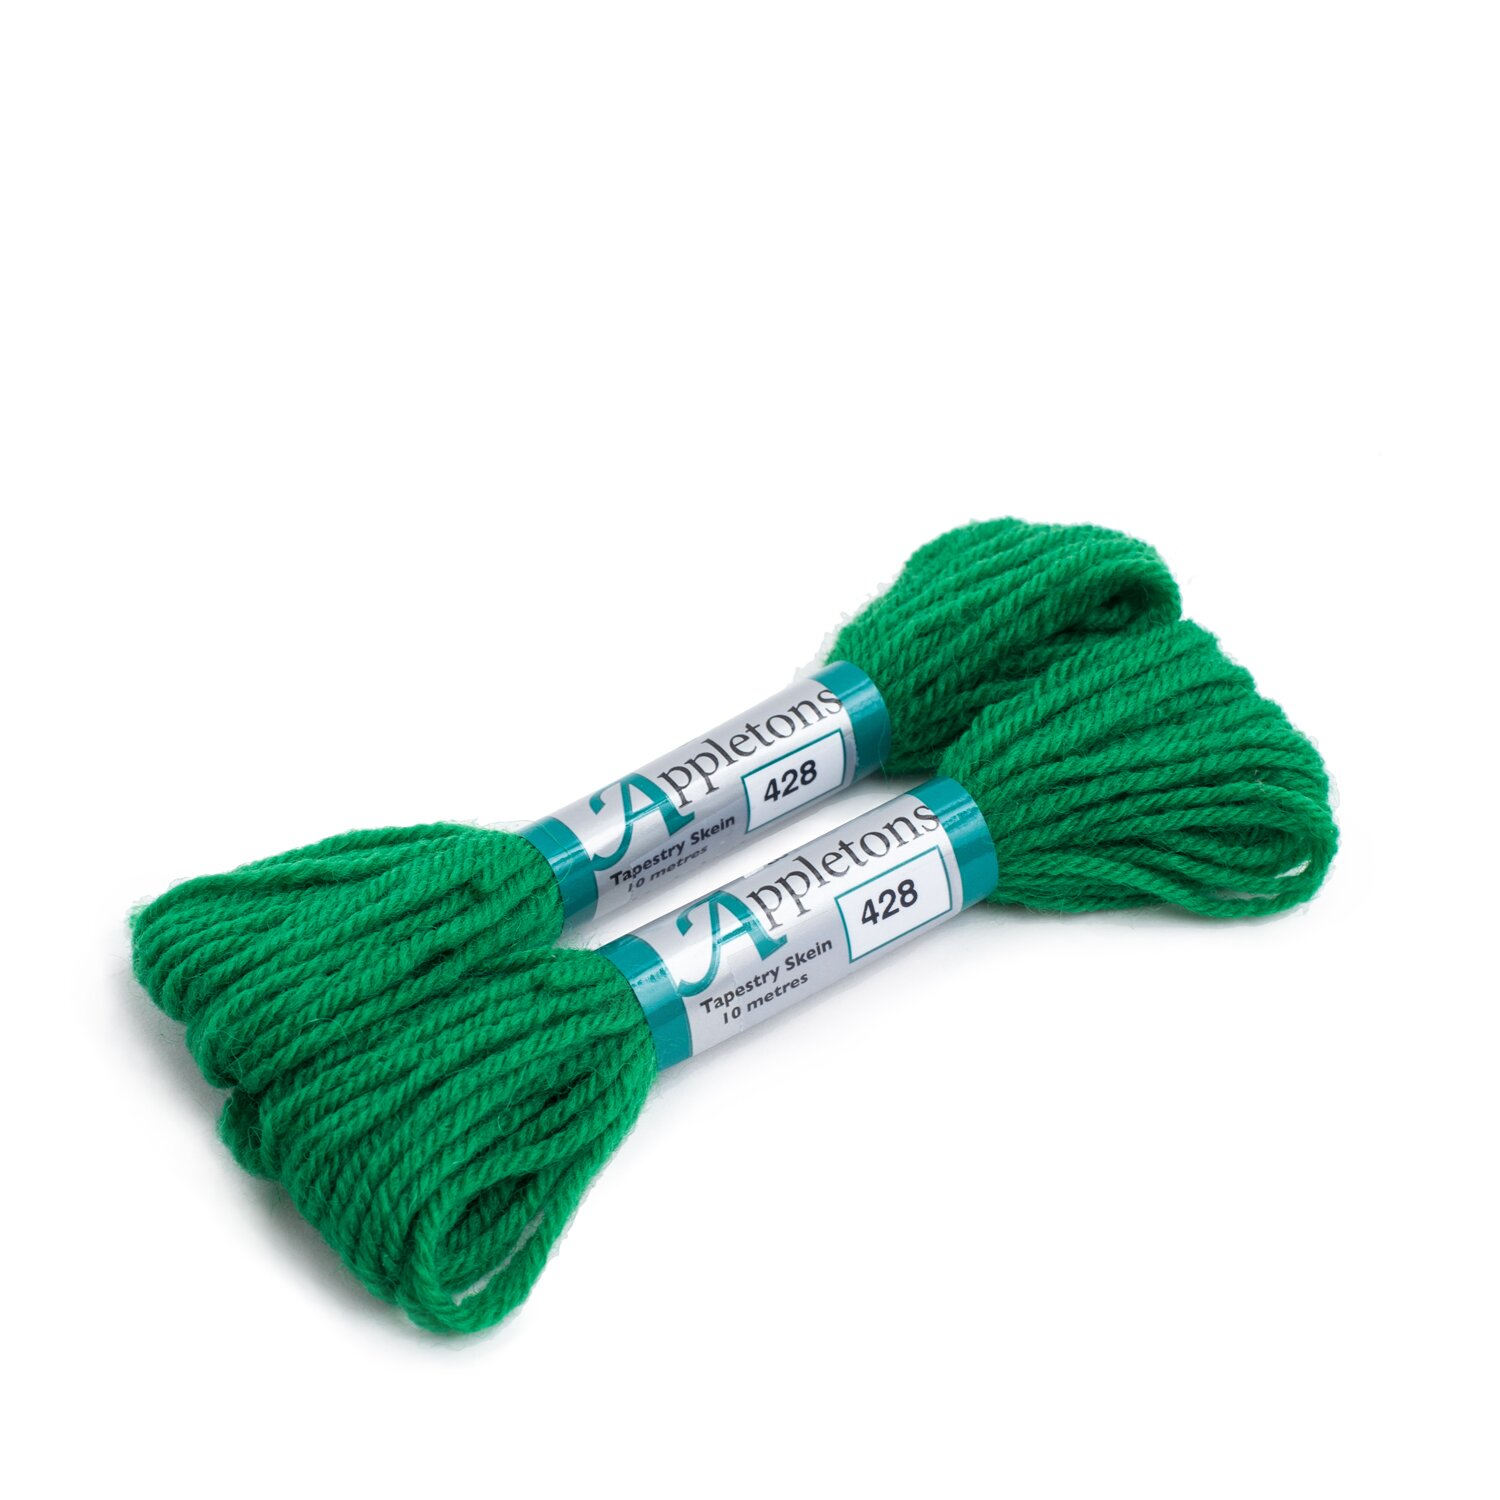 Wool Thread Access Commodities